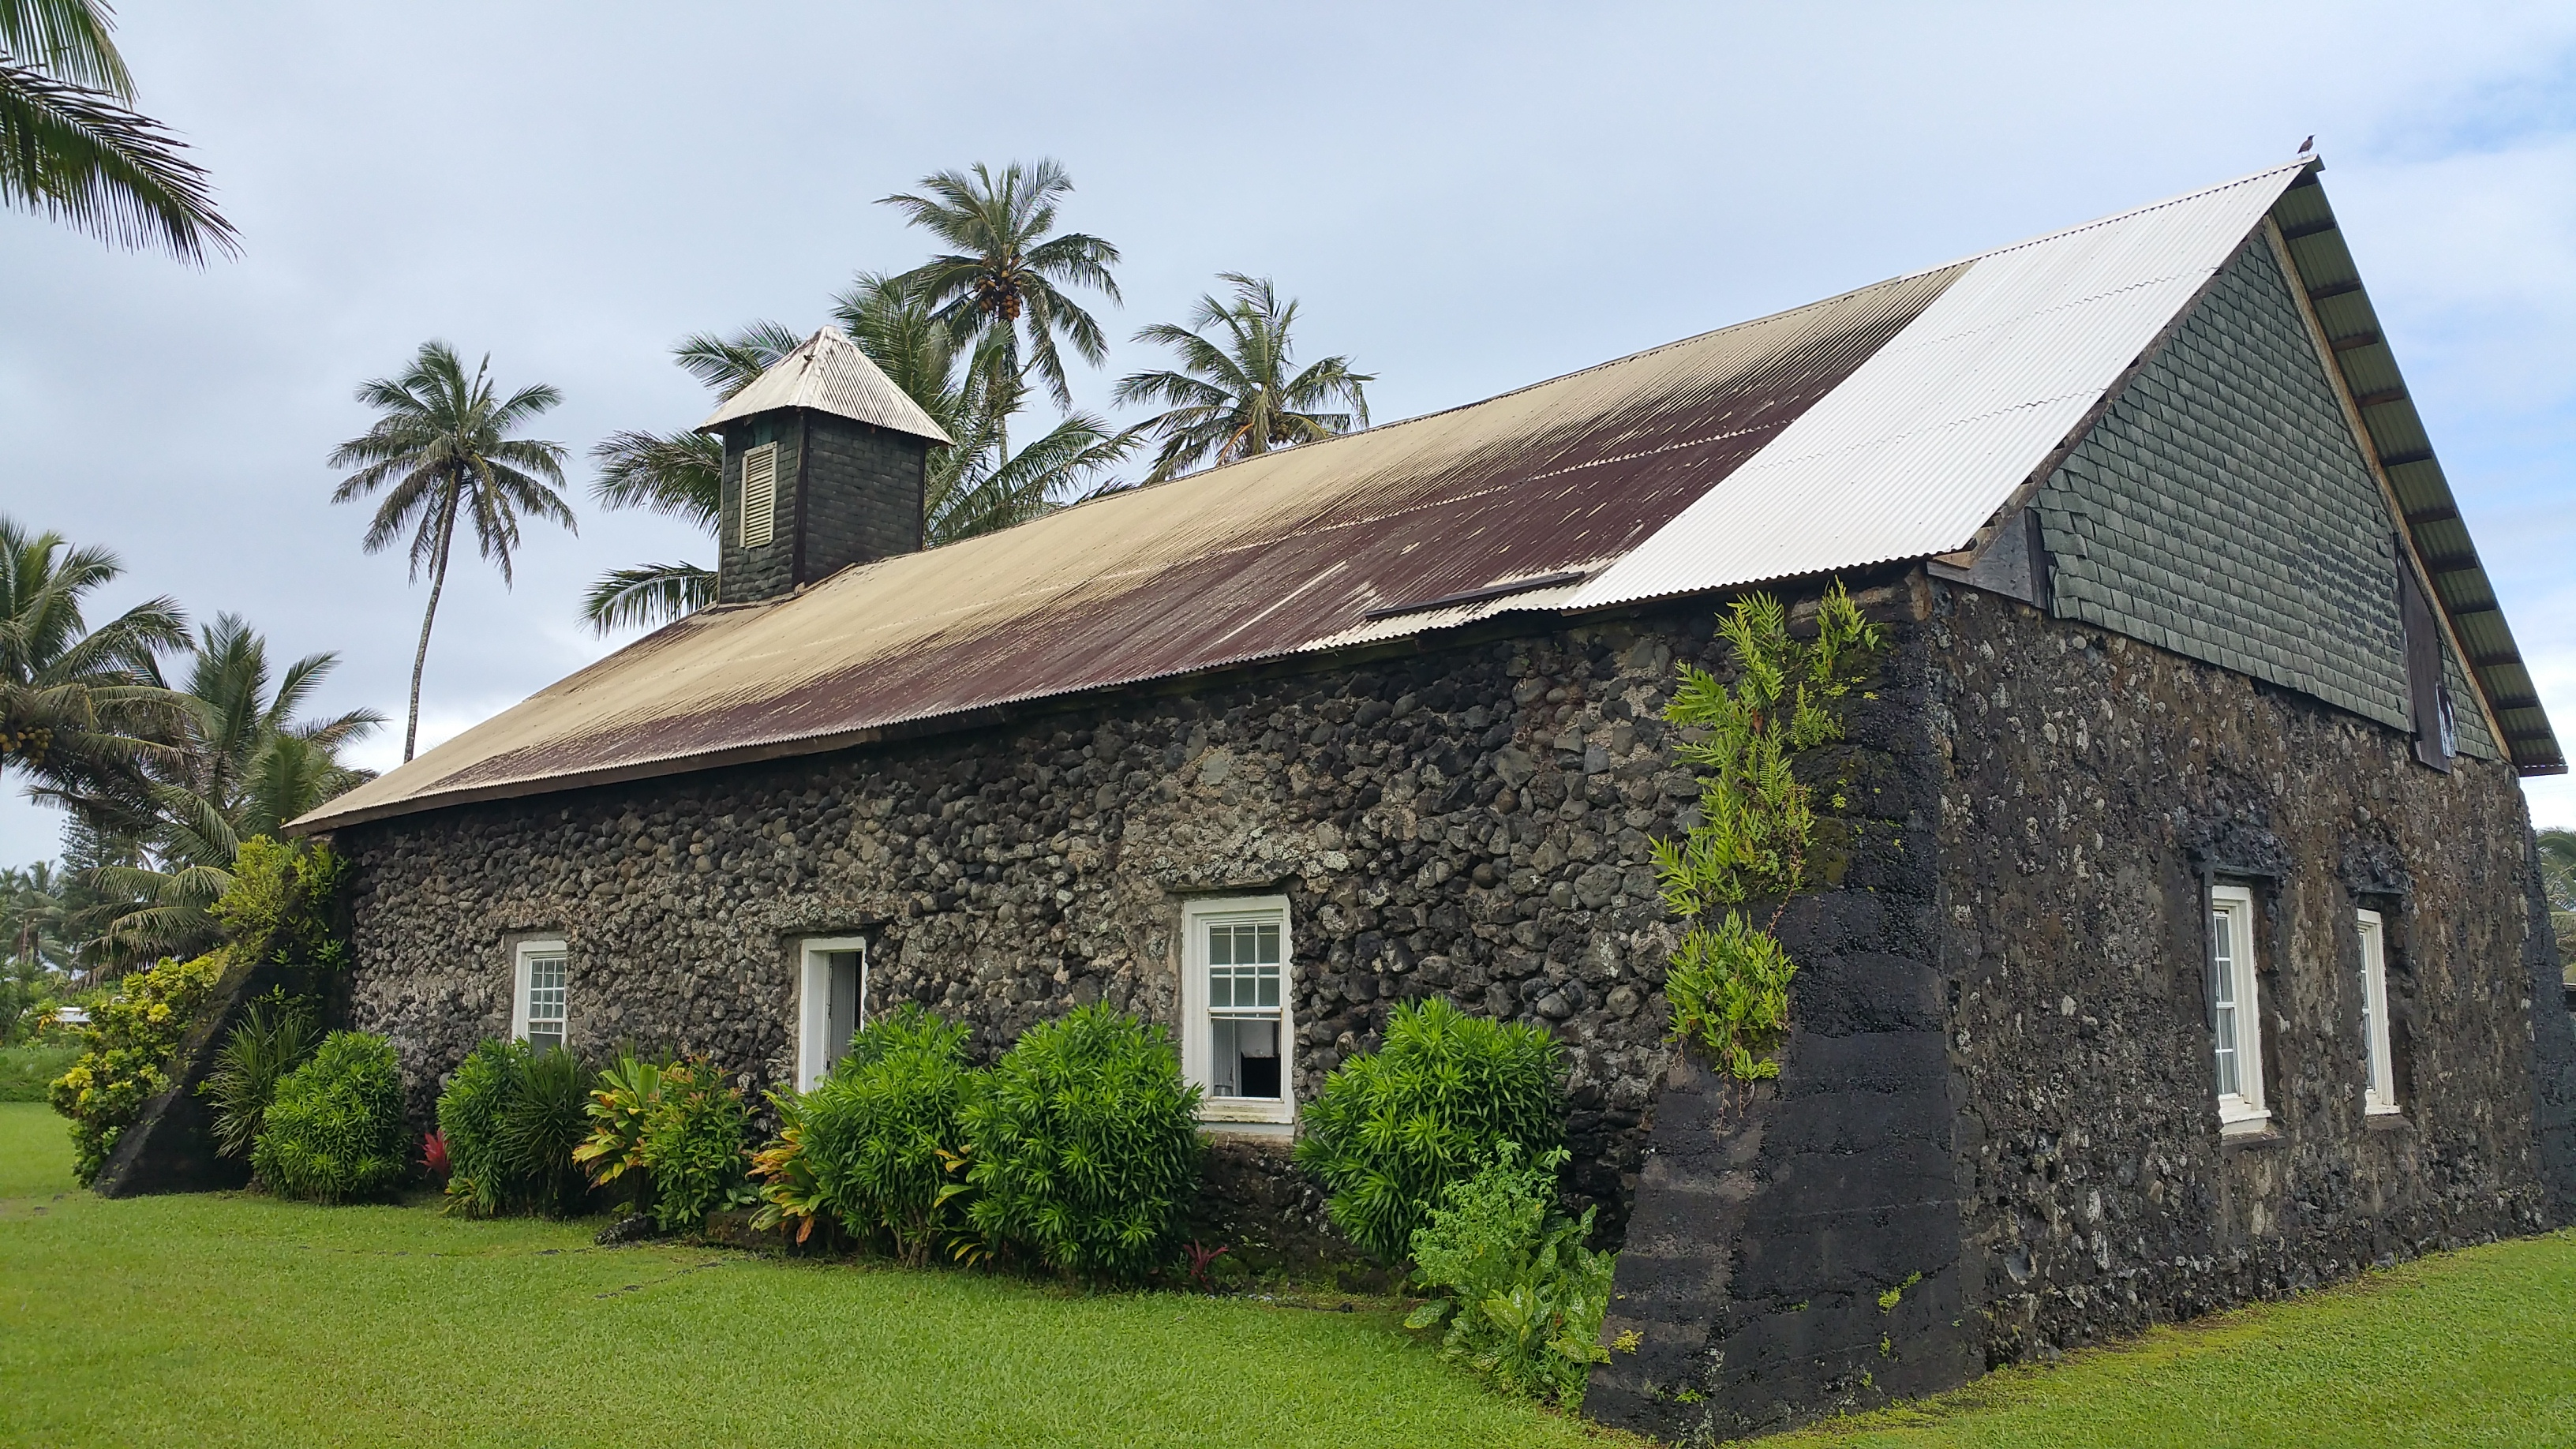 Keanae Church on the Road to Hana. Located on the Keanae Peninsula of East Maui.